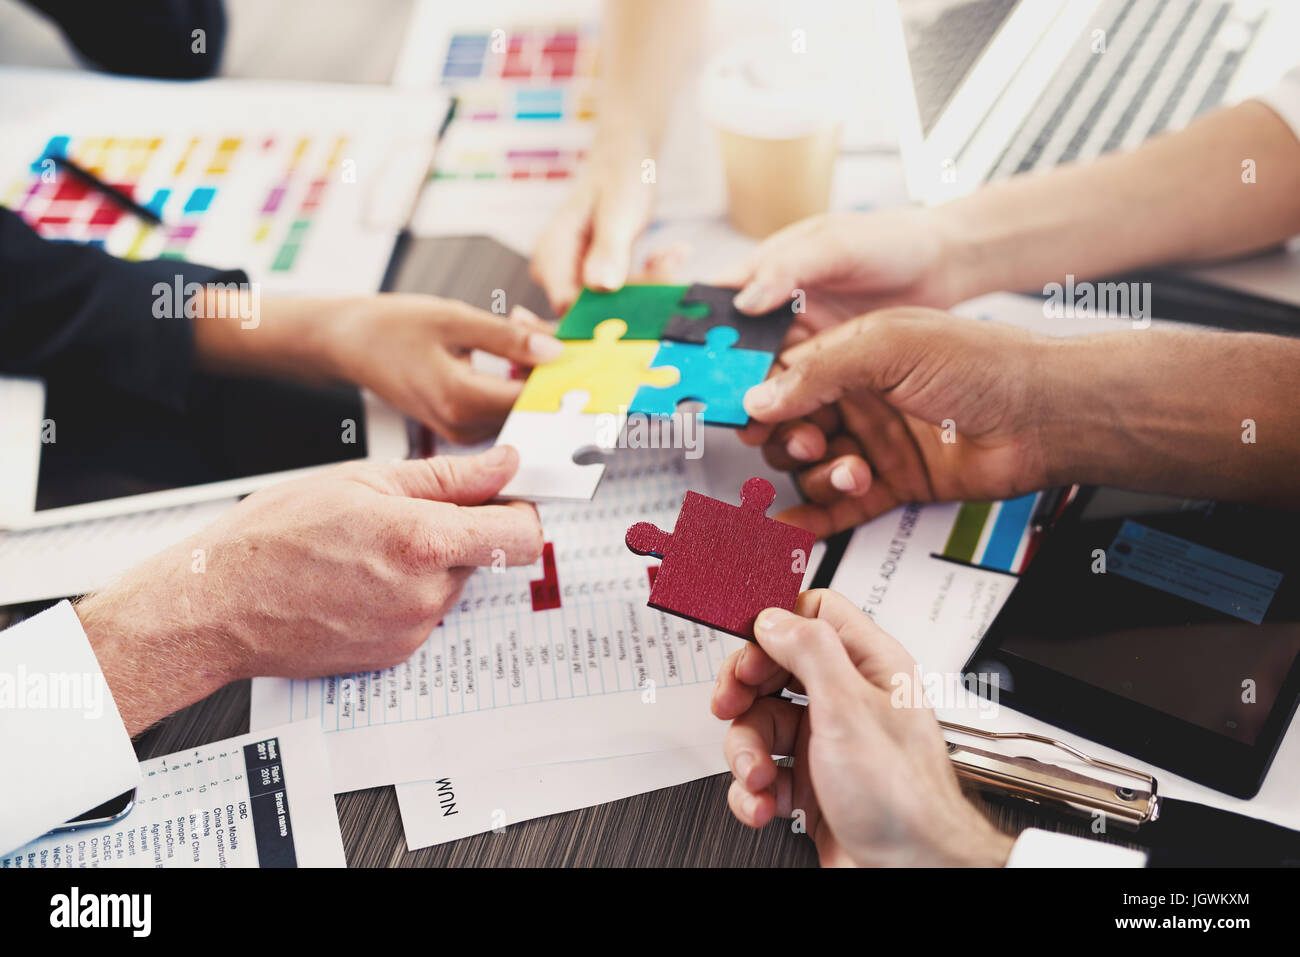 Team of businessmen work together to build a puzzle. Concept of unity and partnership - Stock Image